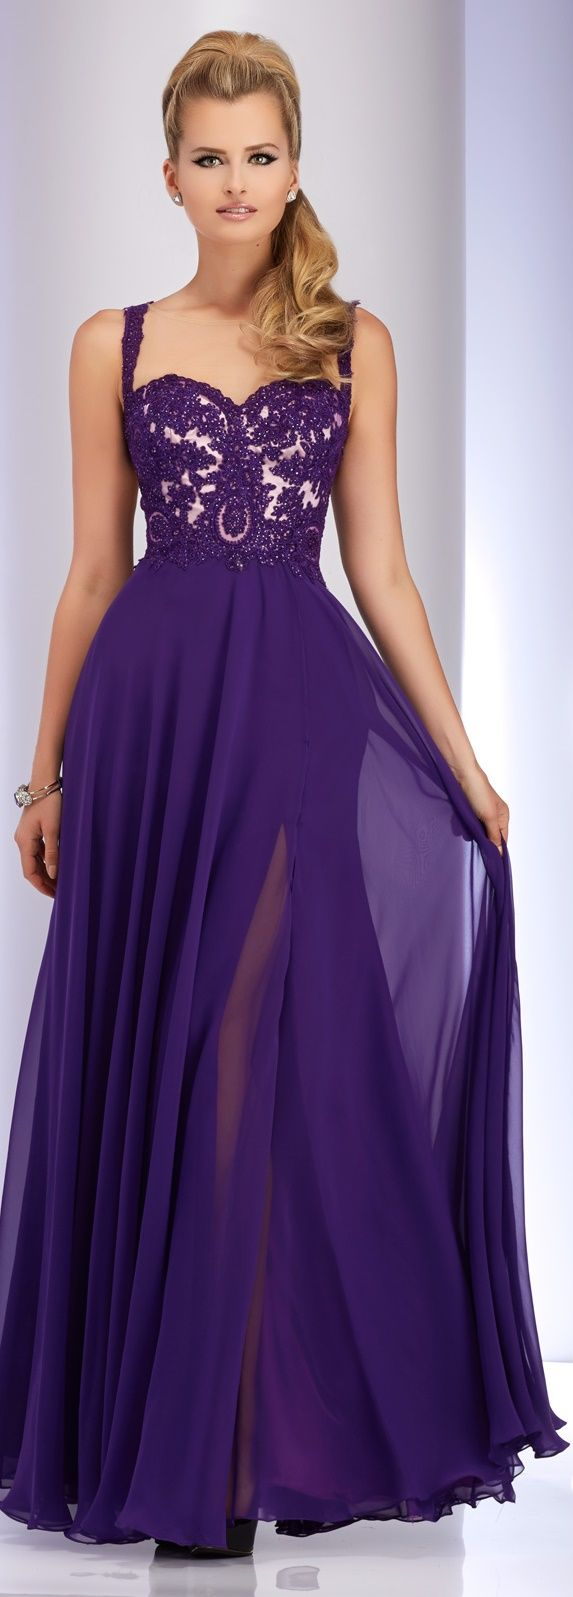 Prom dress alterations rochester mn